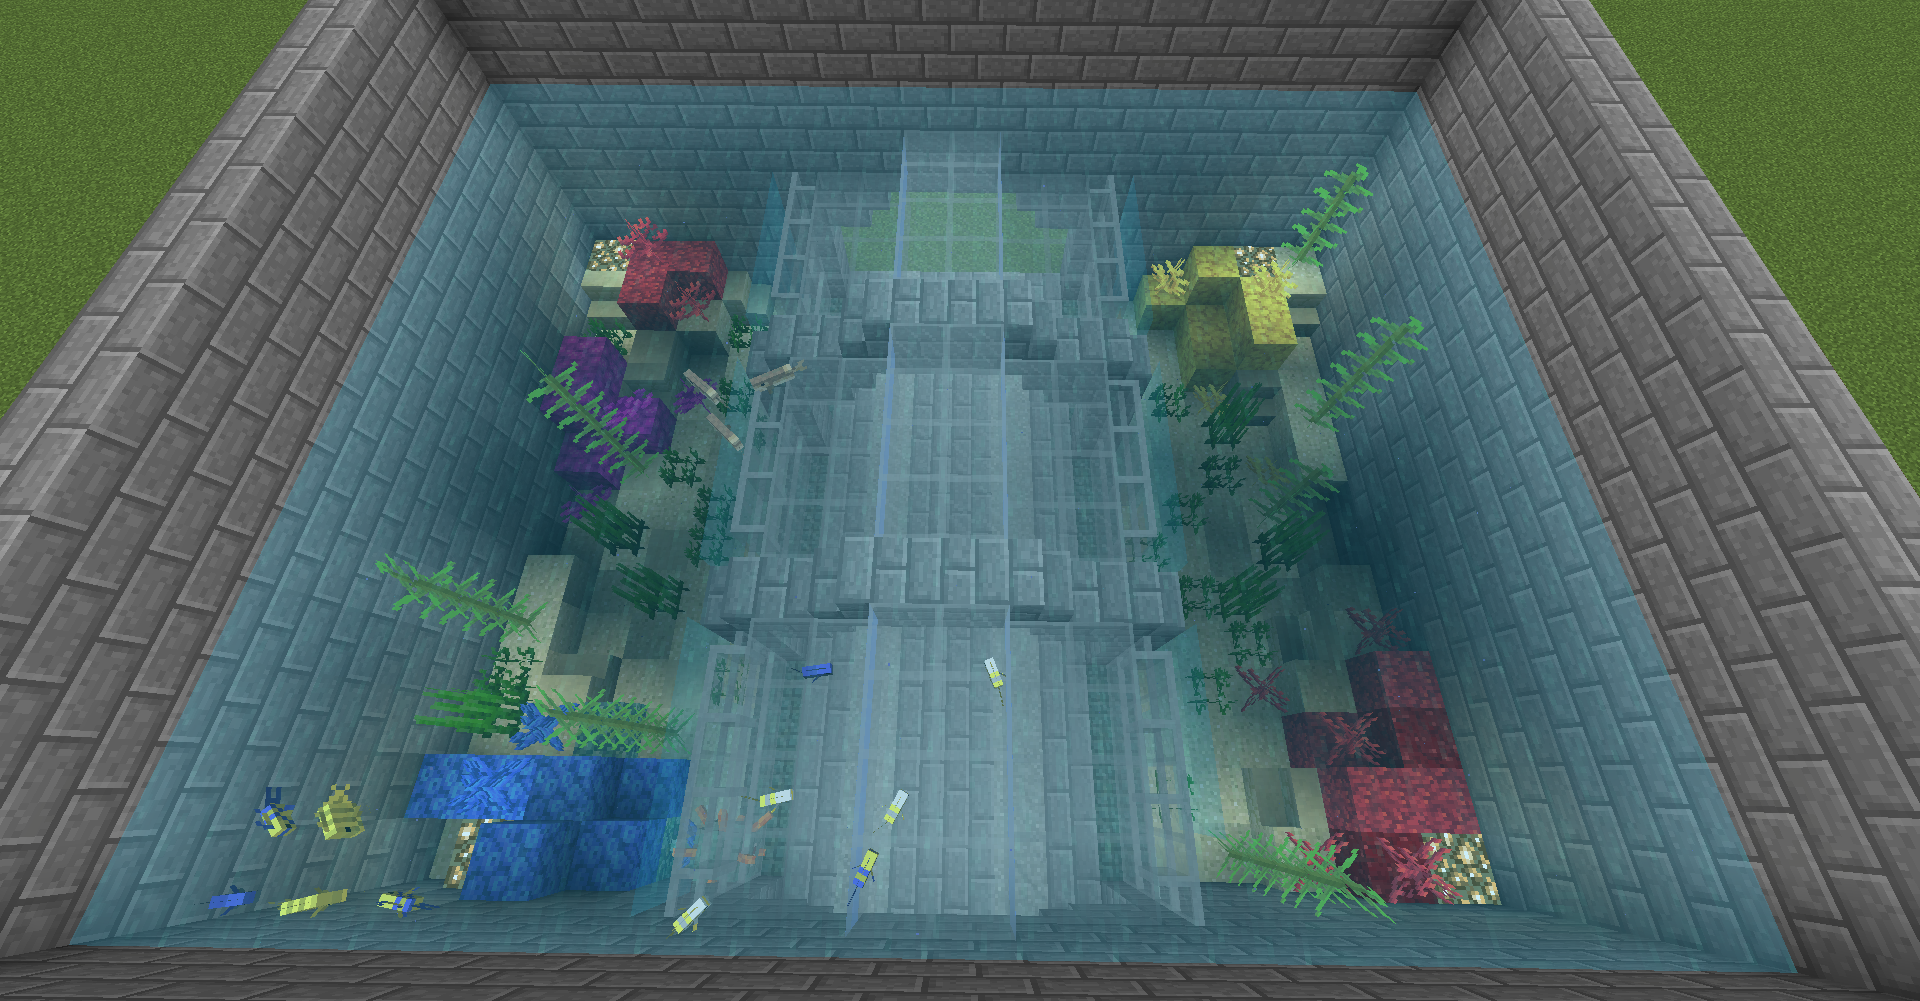 Minecraft On Reddit Minecraft Reddit Aquarium